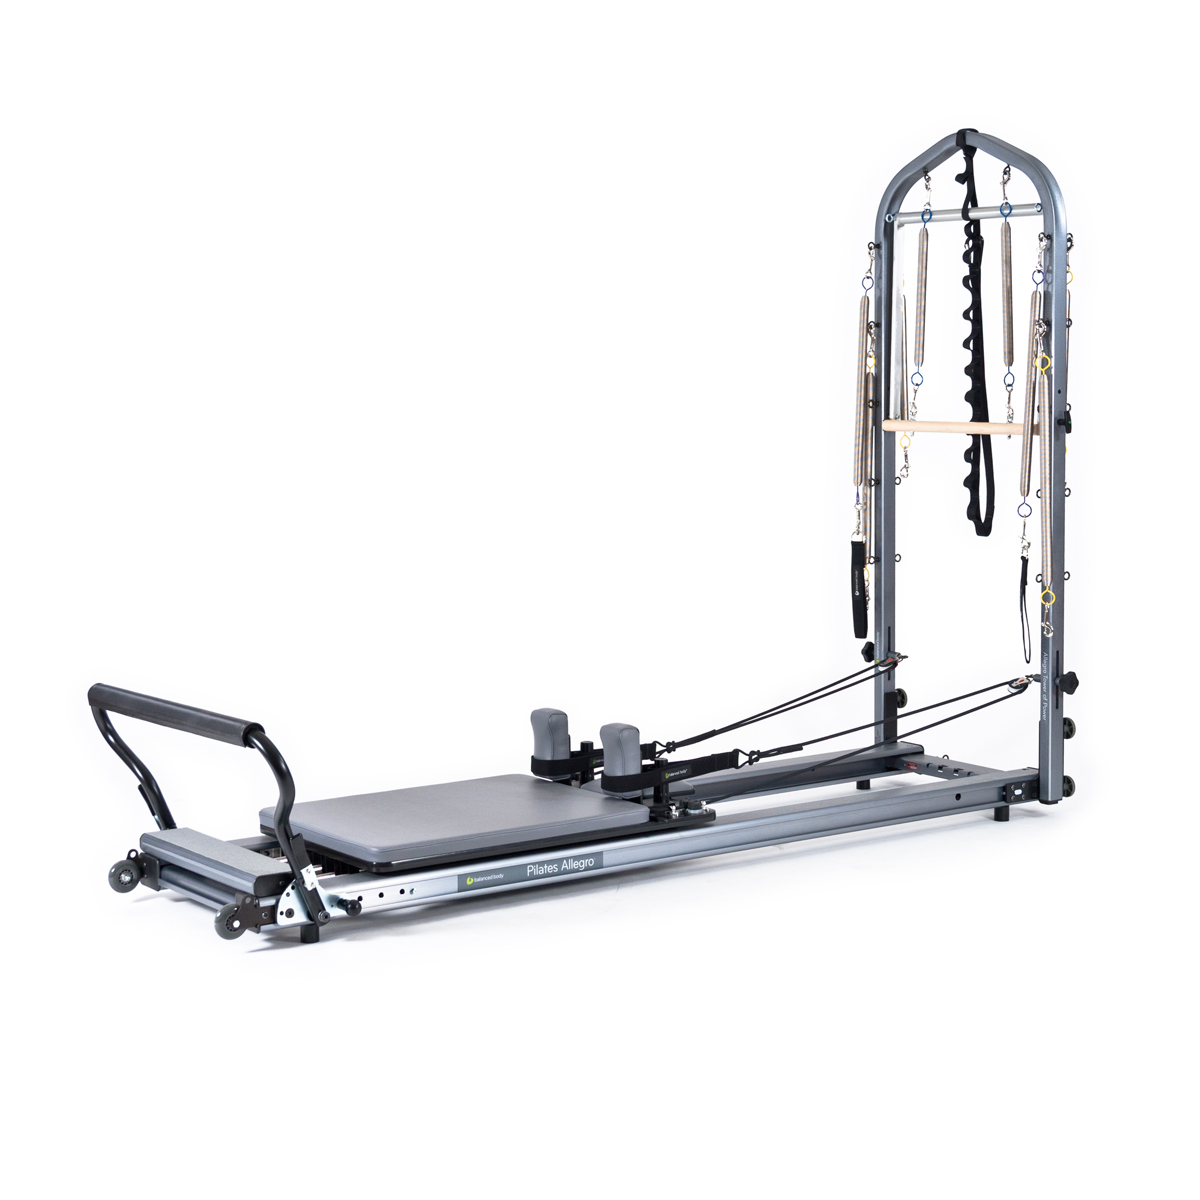 New Pilates Allegro 1 Reformer Tower of Power Balanced Body